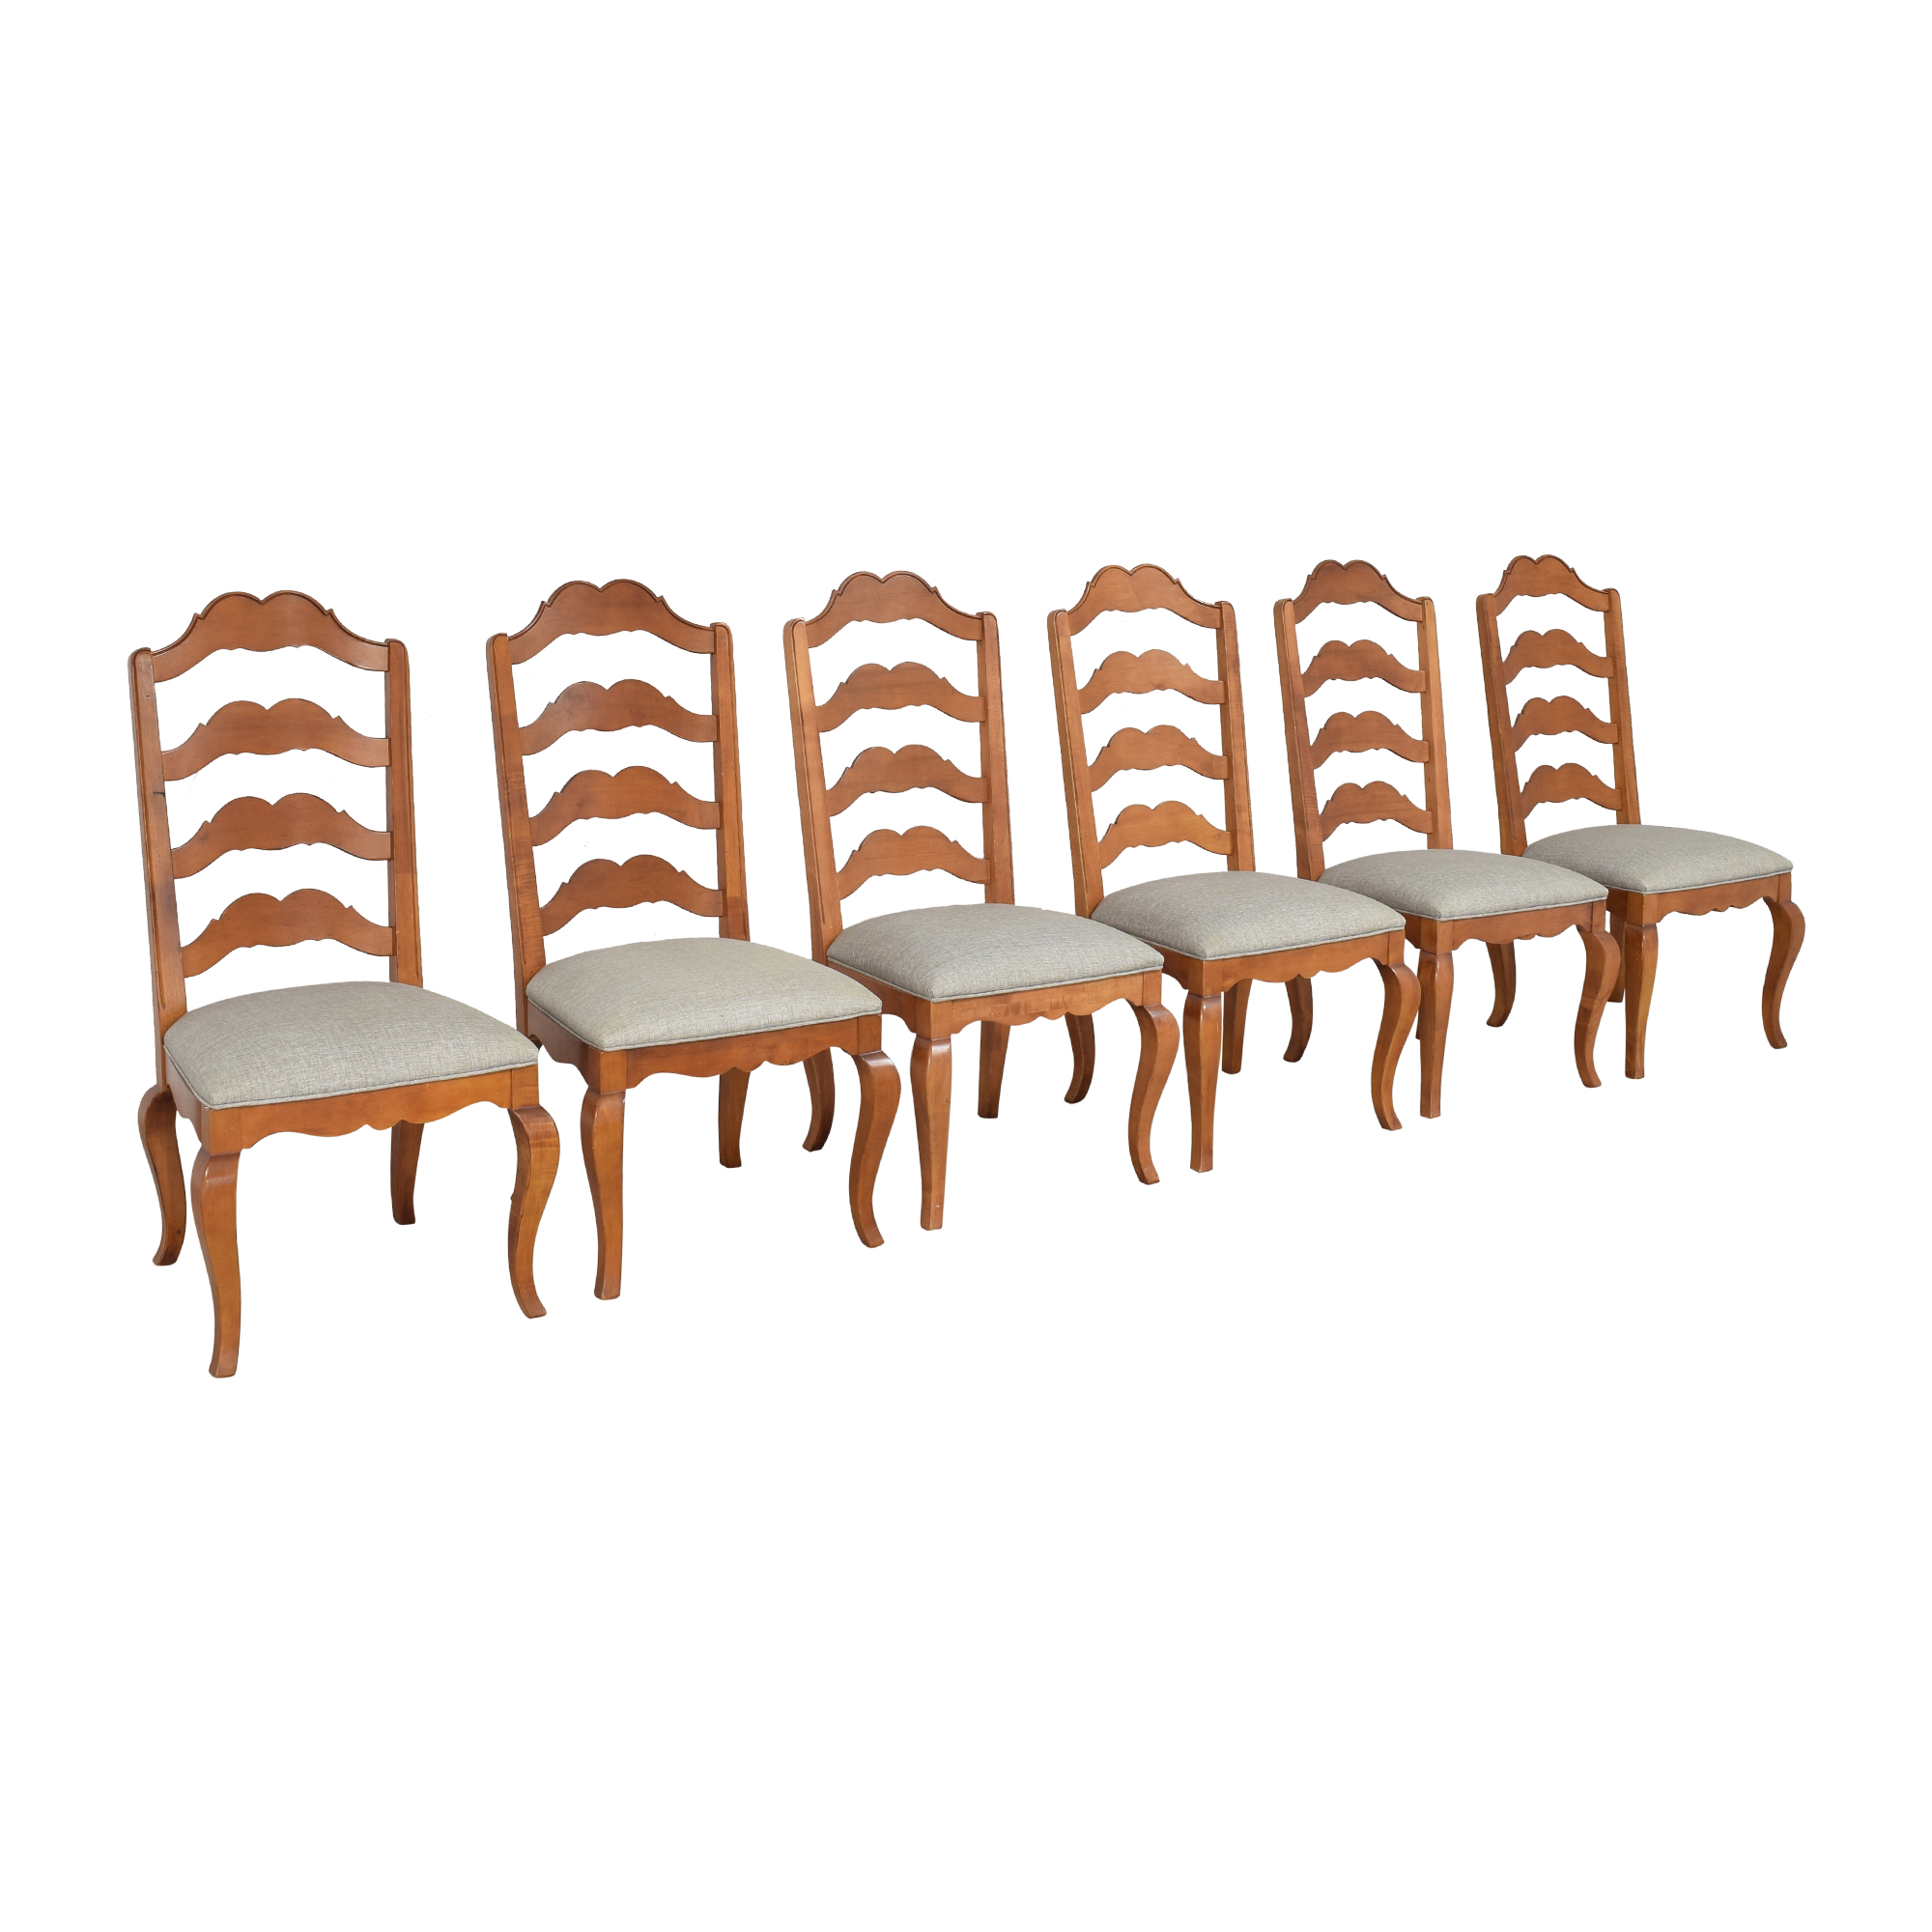 Ethan Allen Ethan Allen Legacy Dining Chairs coupon